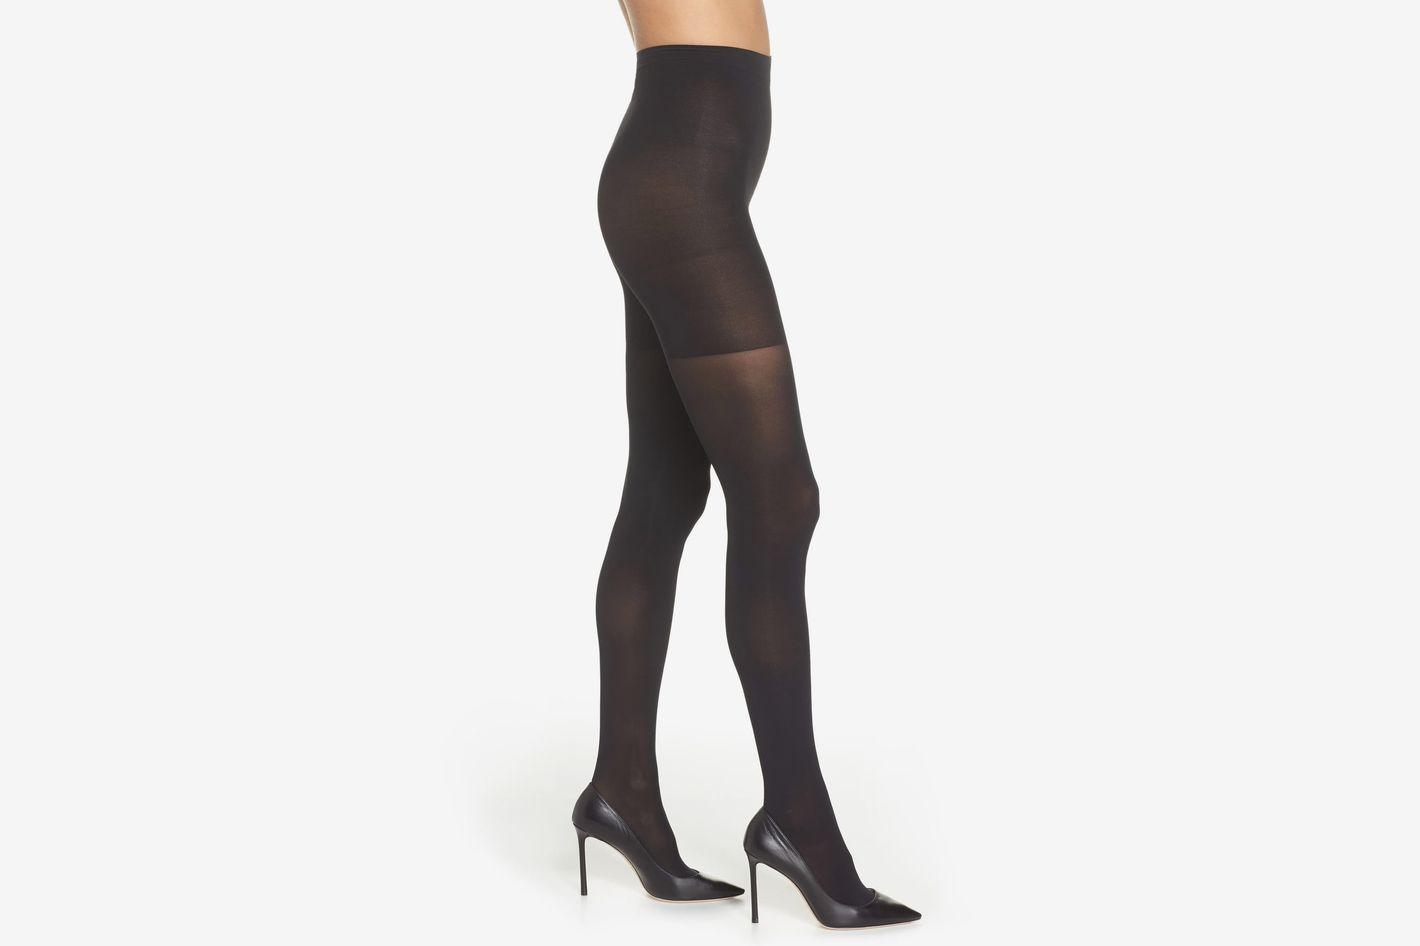 Spanx 'Luxe' Leg Shaping Tights